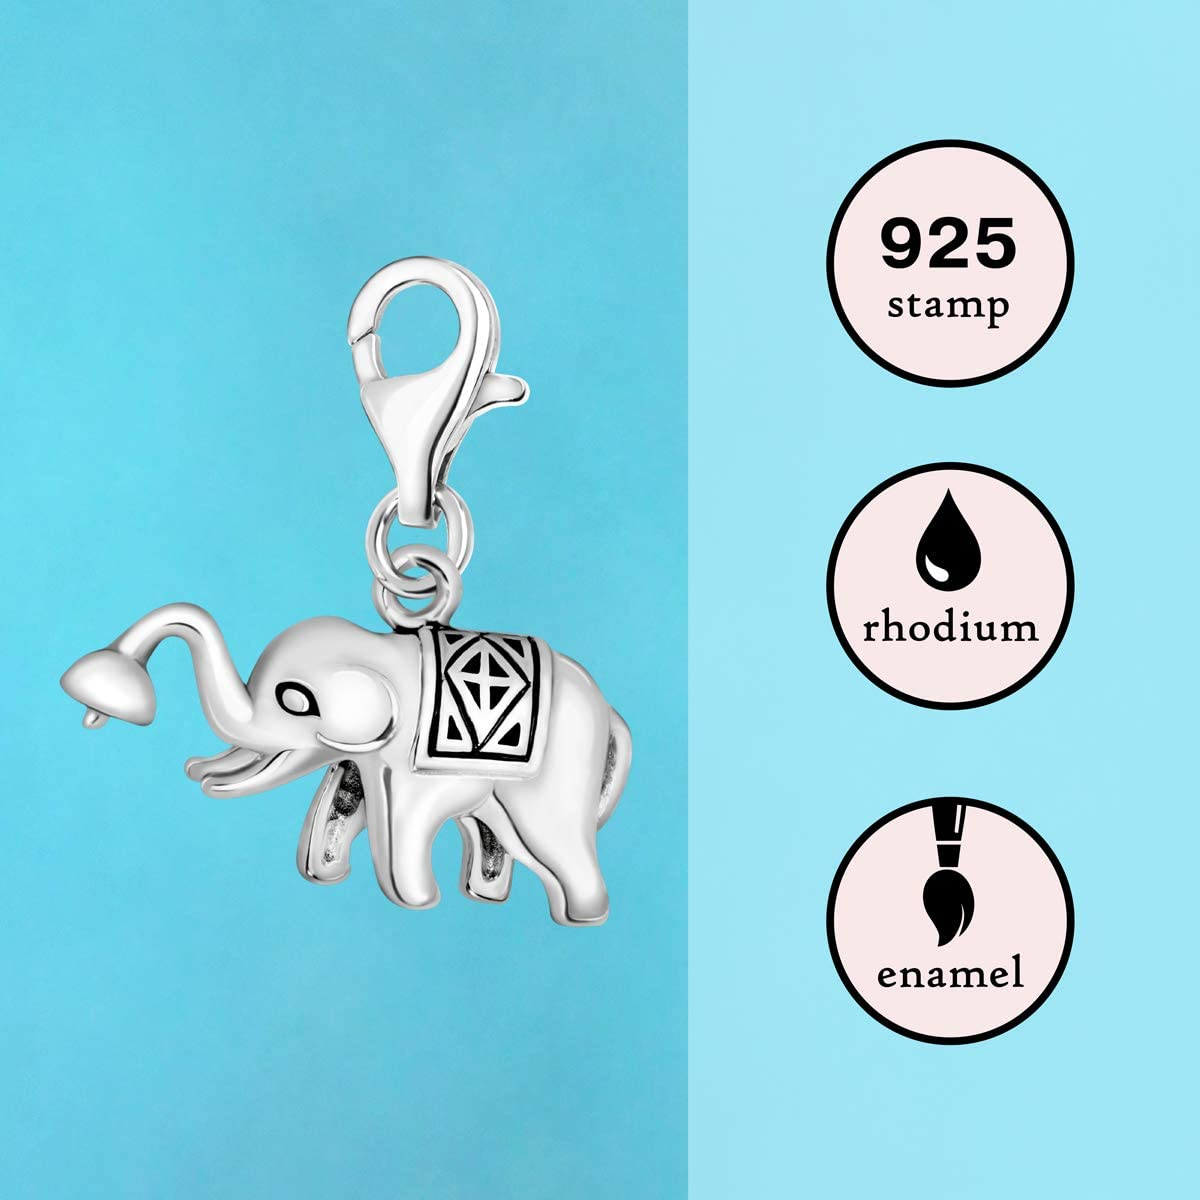 Elephant Charm Silver Clip On Charm Lobster Clasp Animal Gifts Elephant Gifts